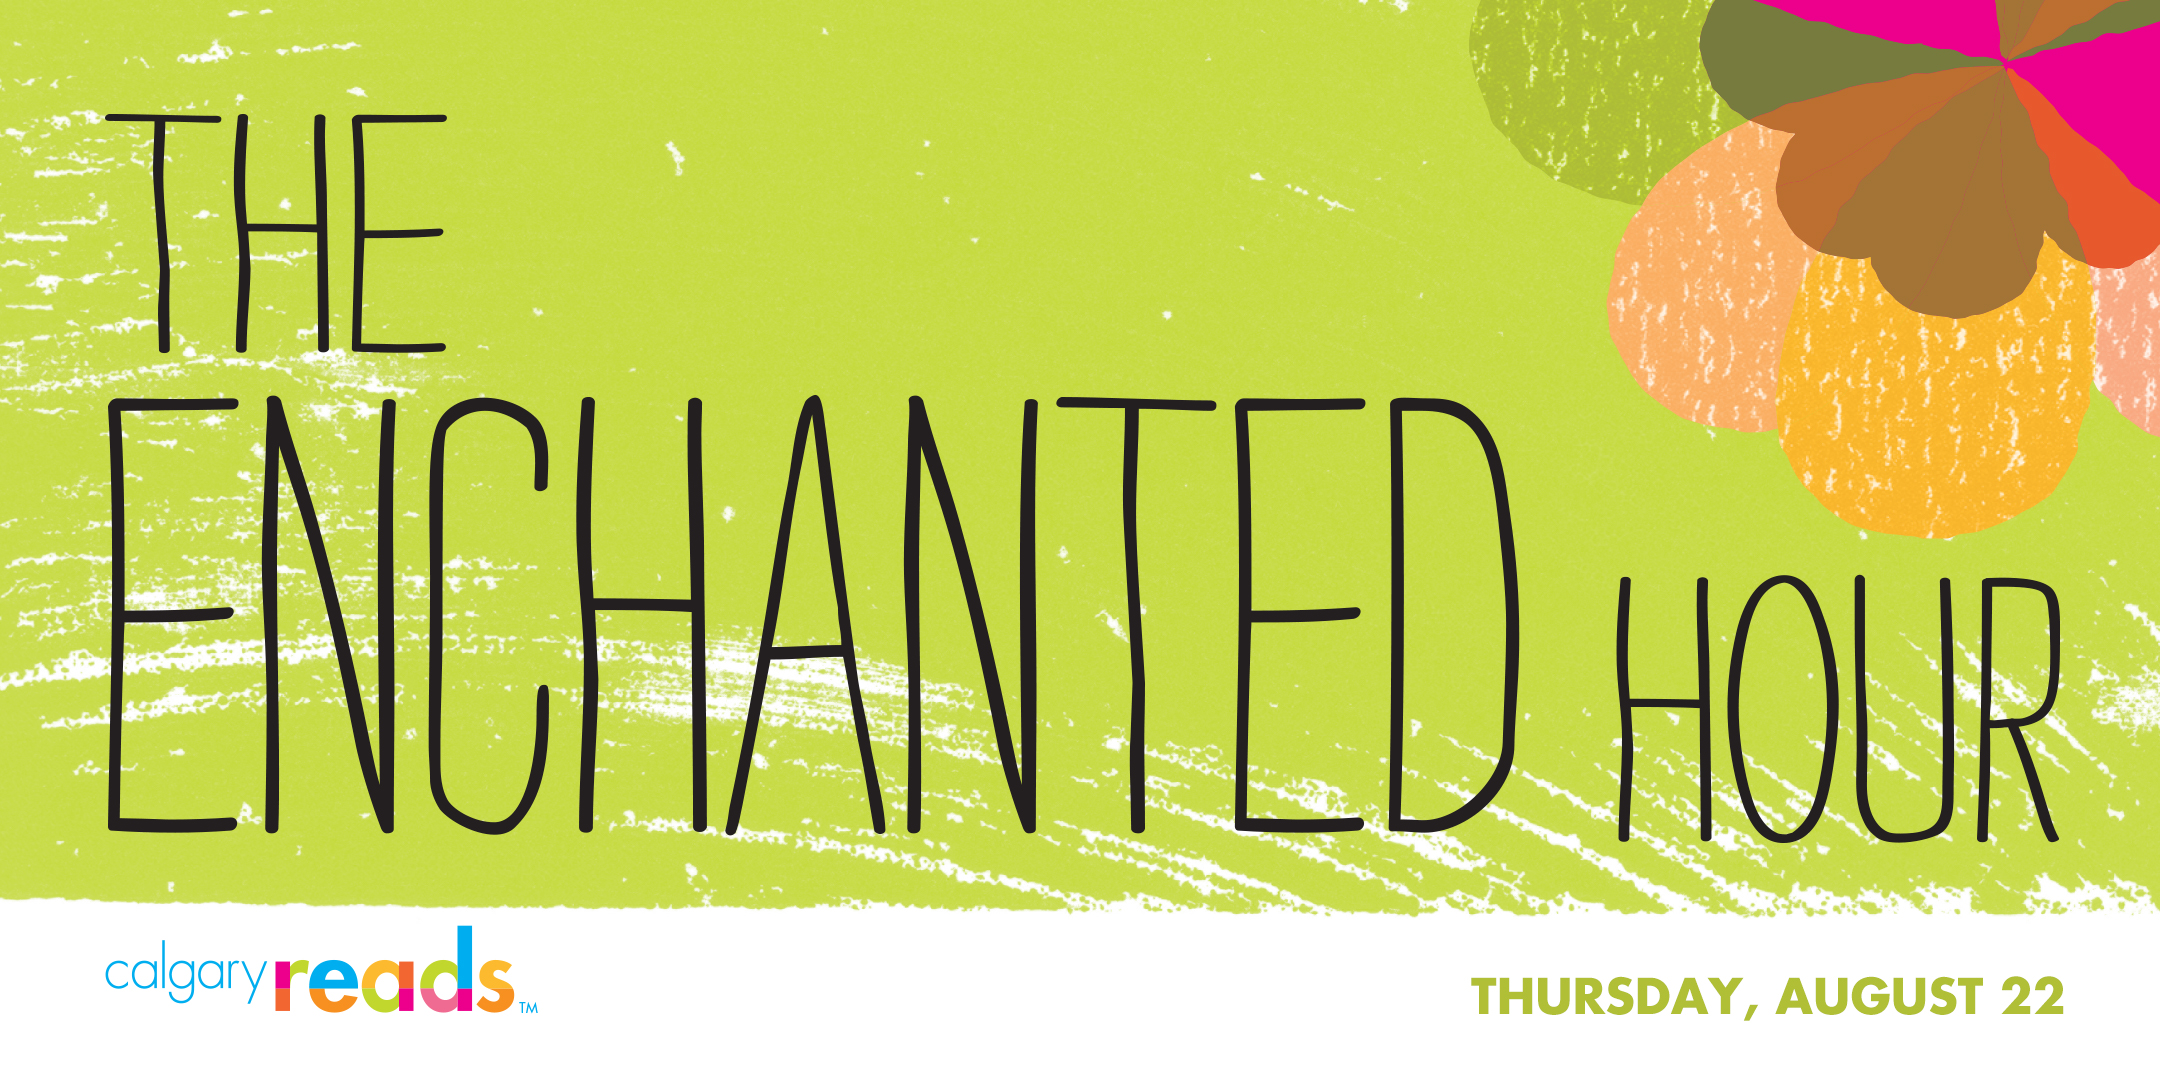 Join Calgary Reads for an intimate evening withMeghan Cox Gurdon, the internationally-known children's book critic and author ofThe Enchanted Hour, The Miraculous Power of Reading Aloud in the Age of Distraction.